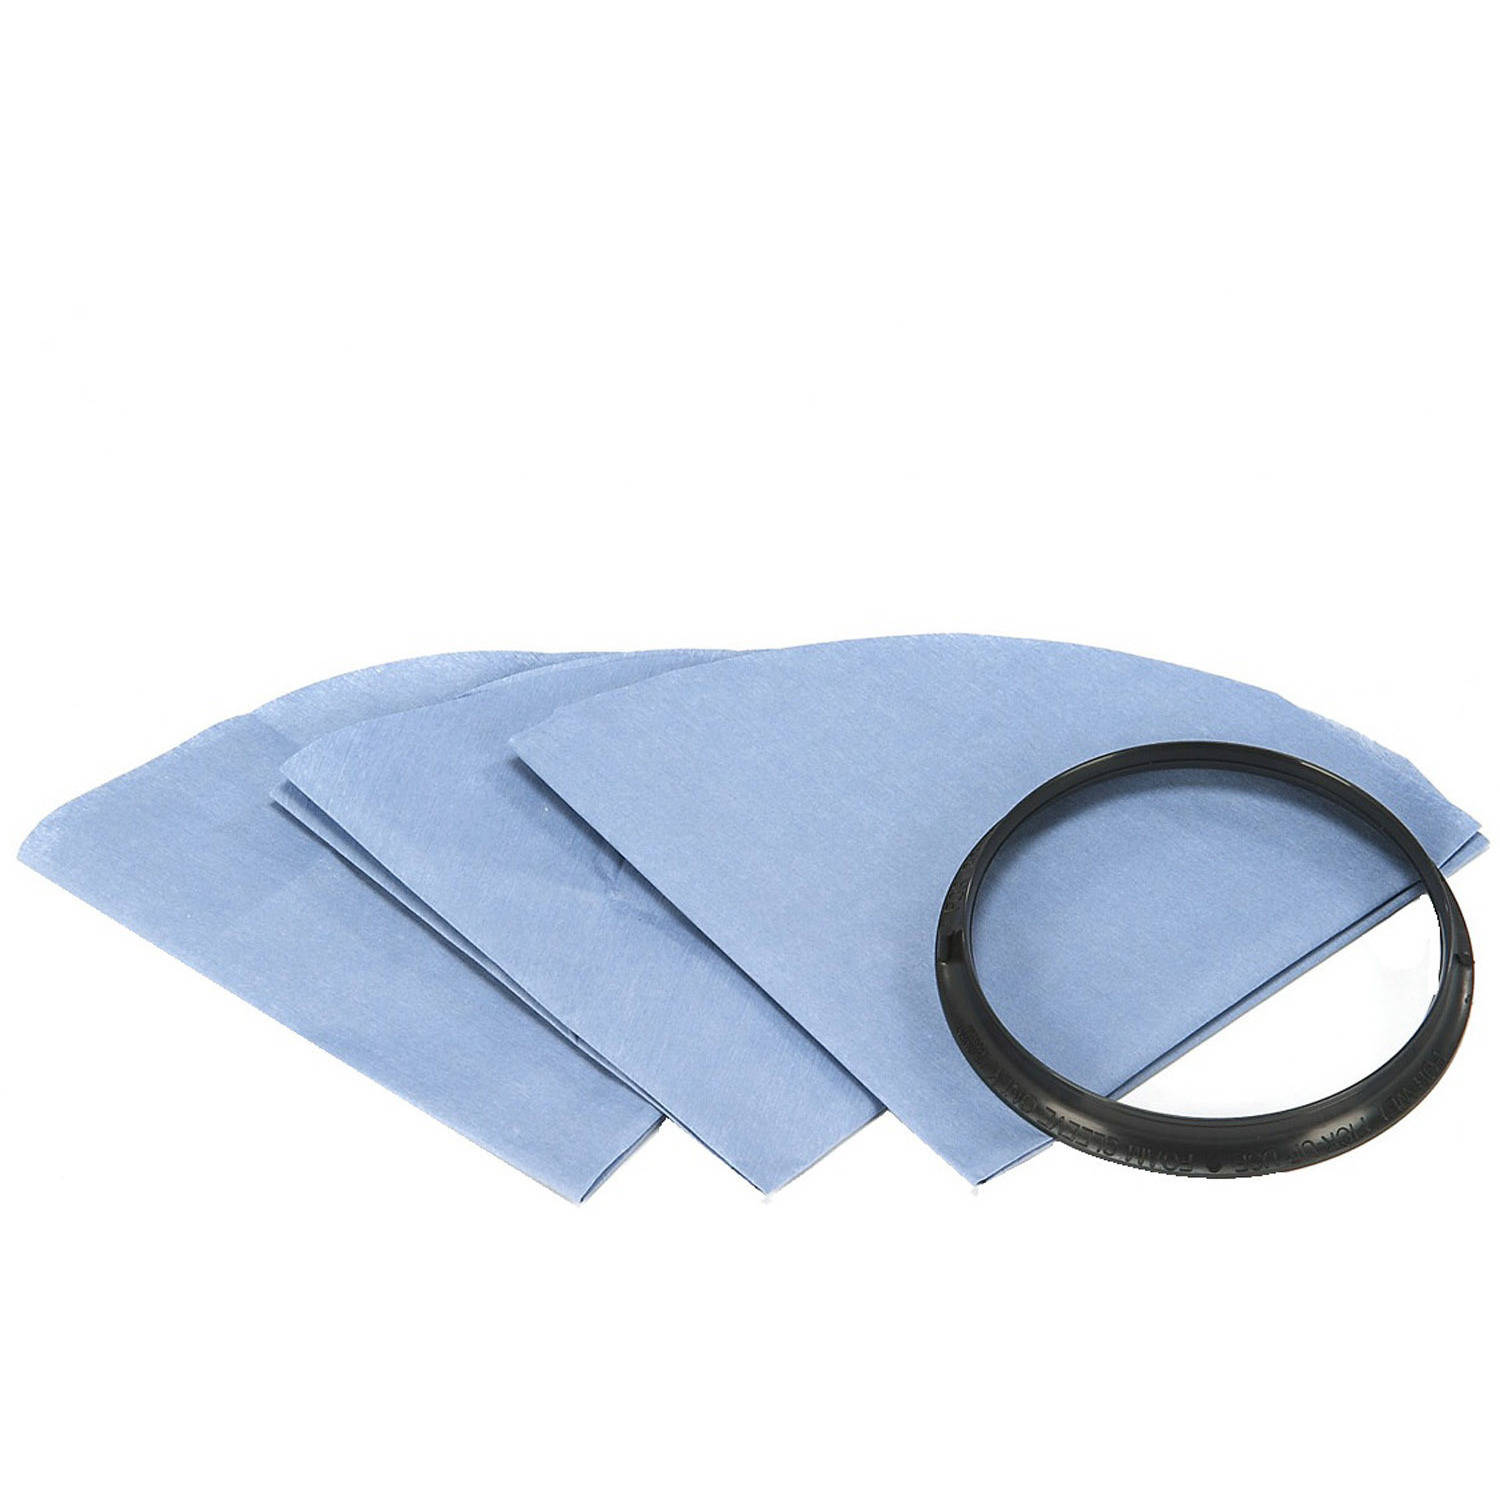 shopvac reusable dry filters 3pack - Shop Vac Hose